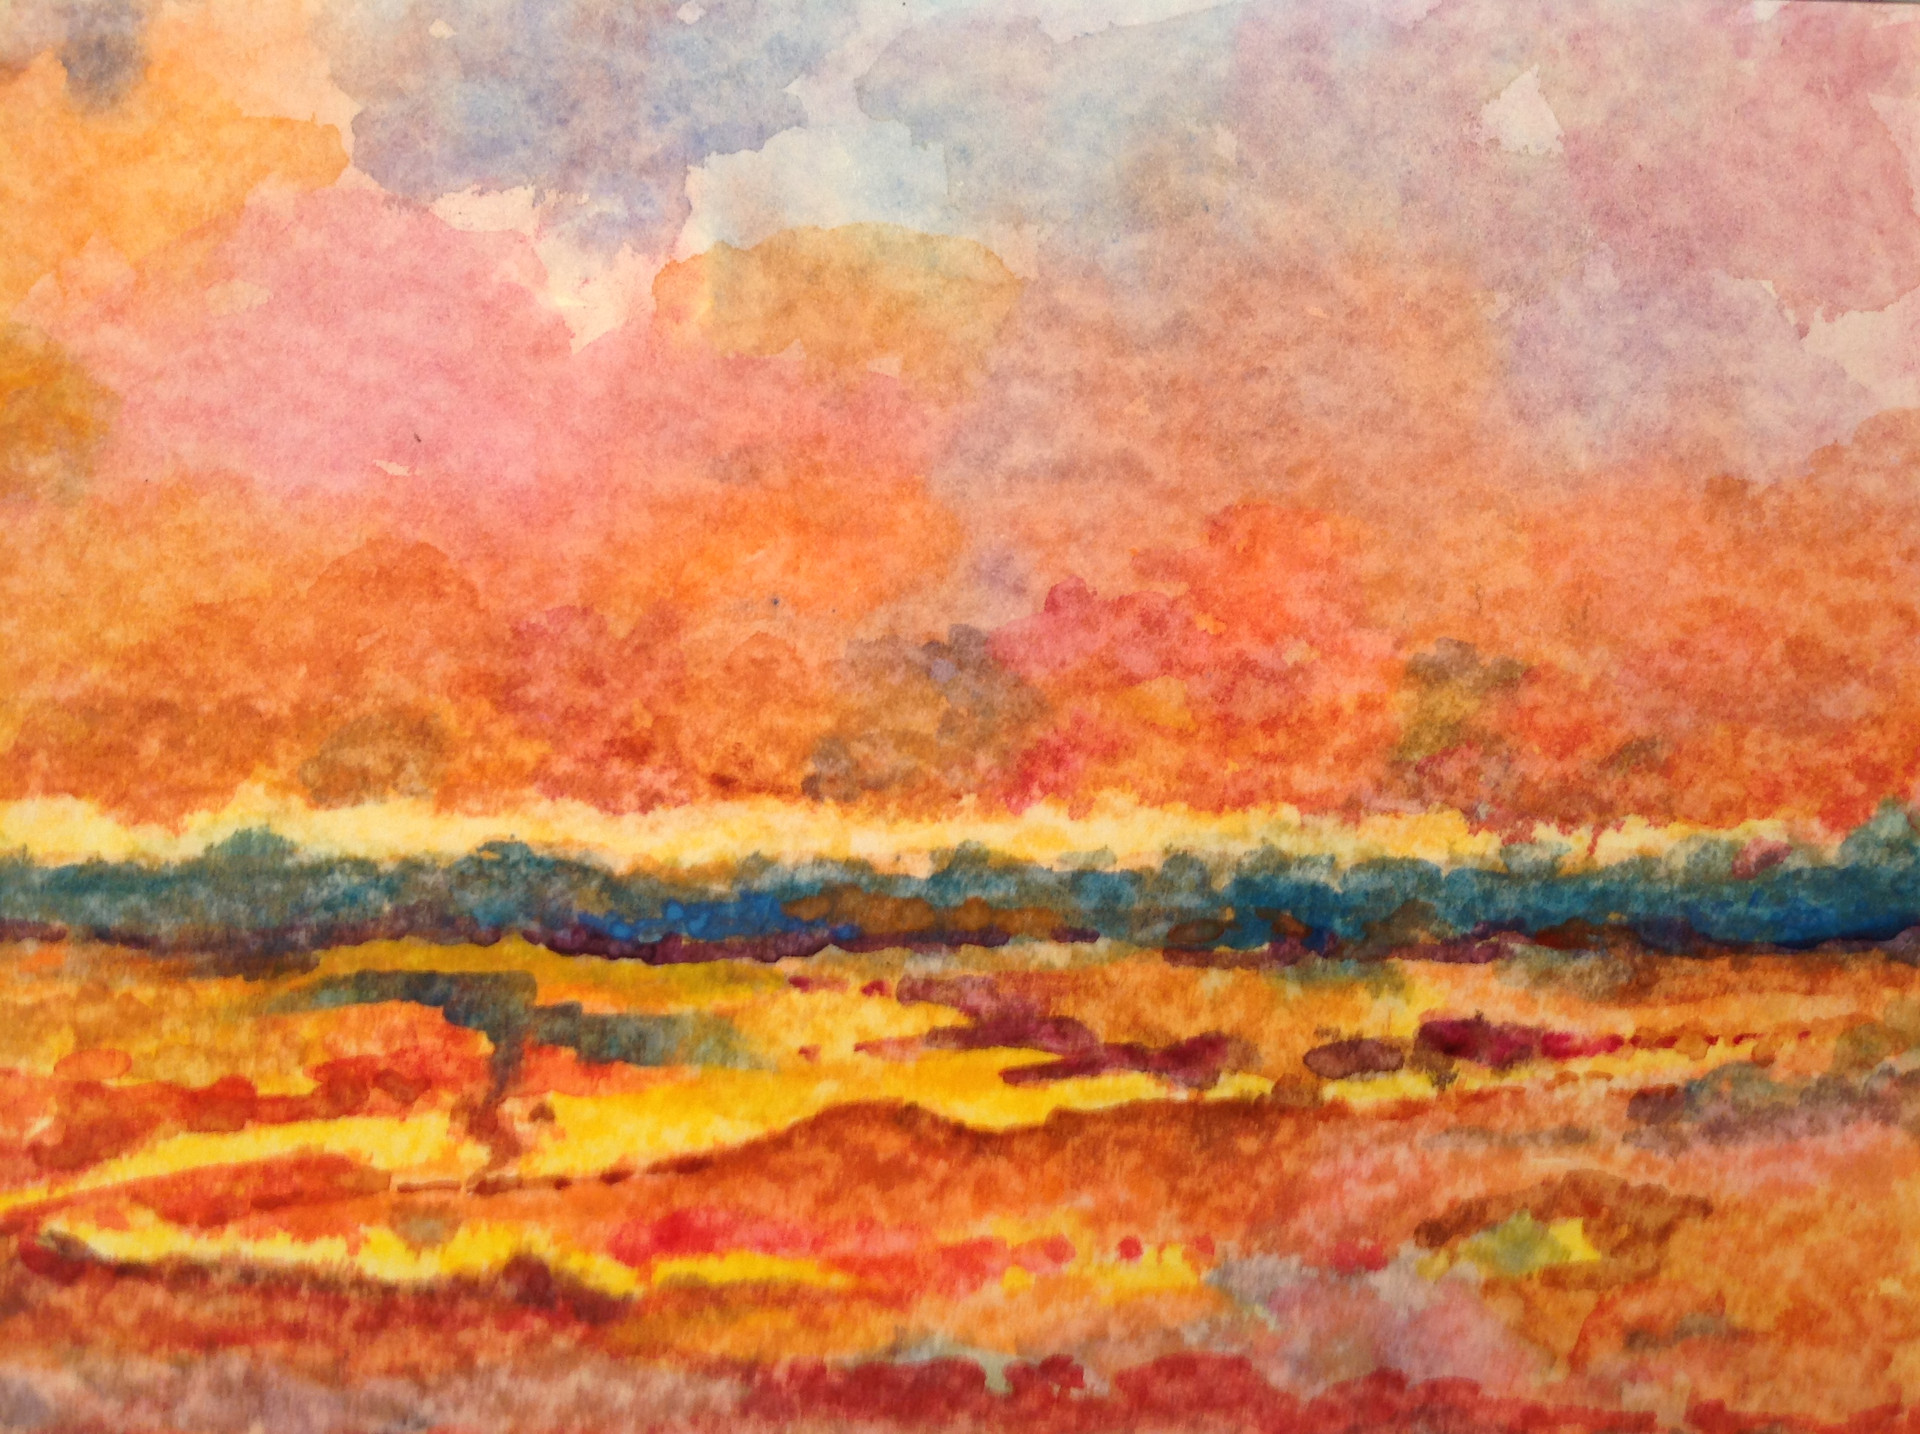 Imagined Landscape with Lava